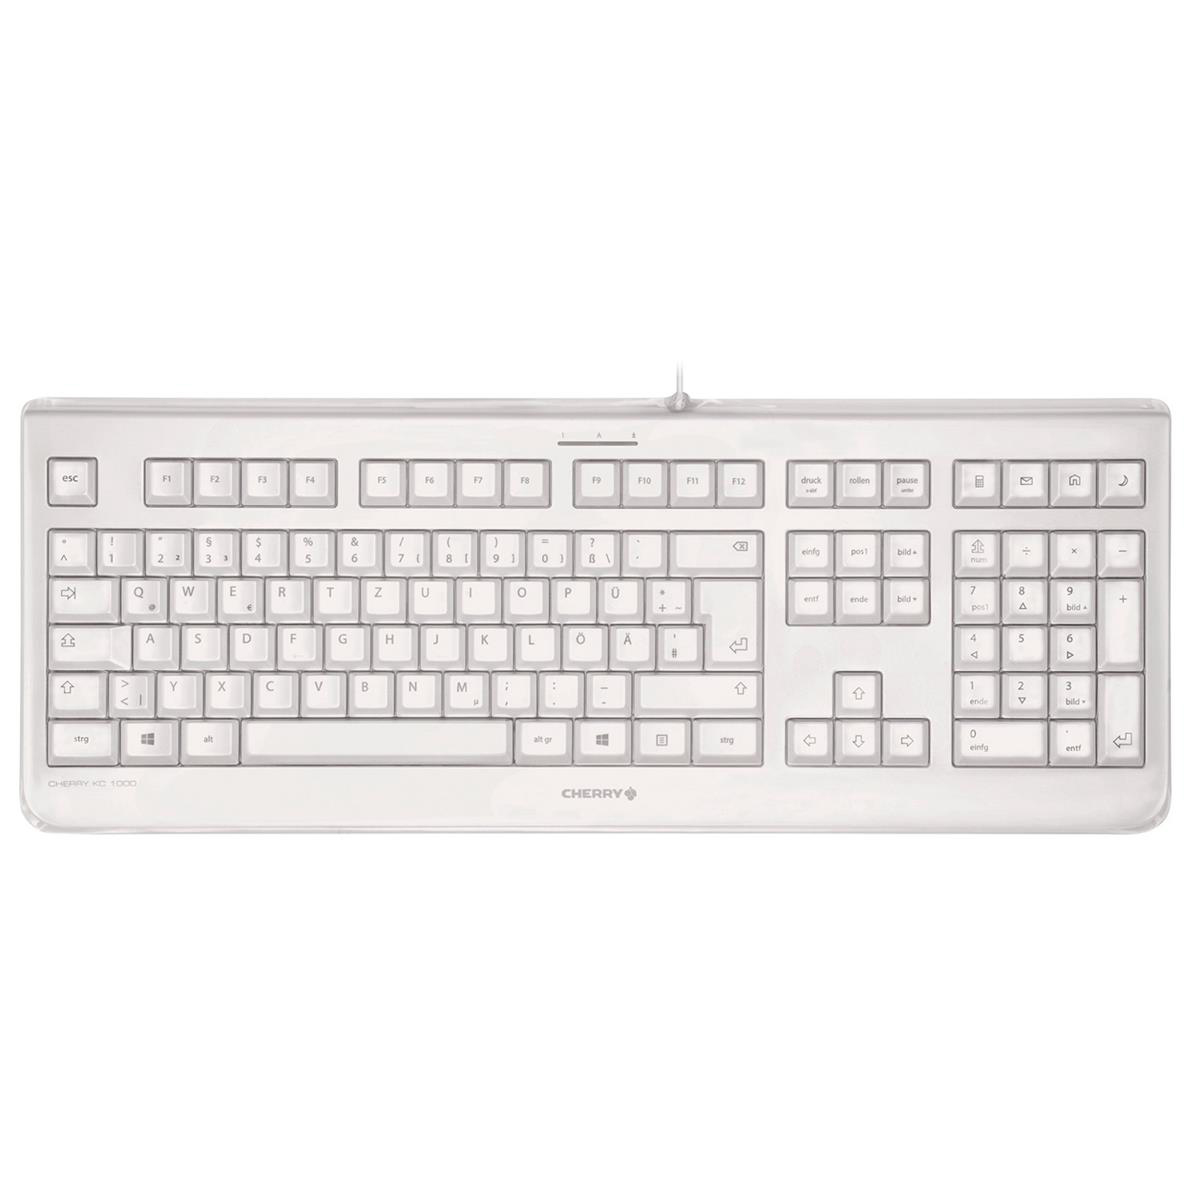 Wired Cherry KC 1068 Heat-sealed Keyboard Ultra Flat USB Connection Grey Ref KC 1068